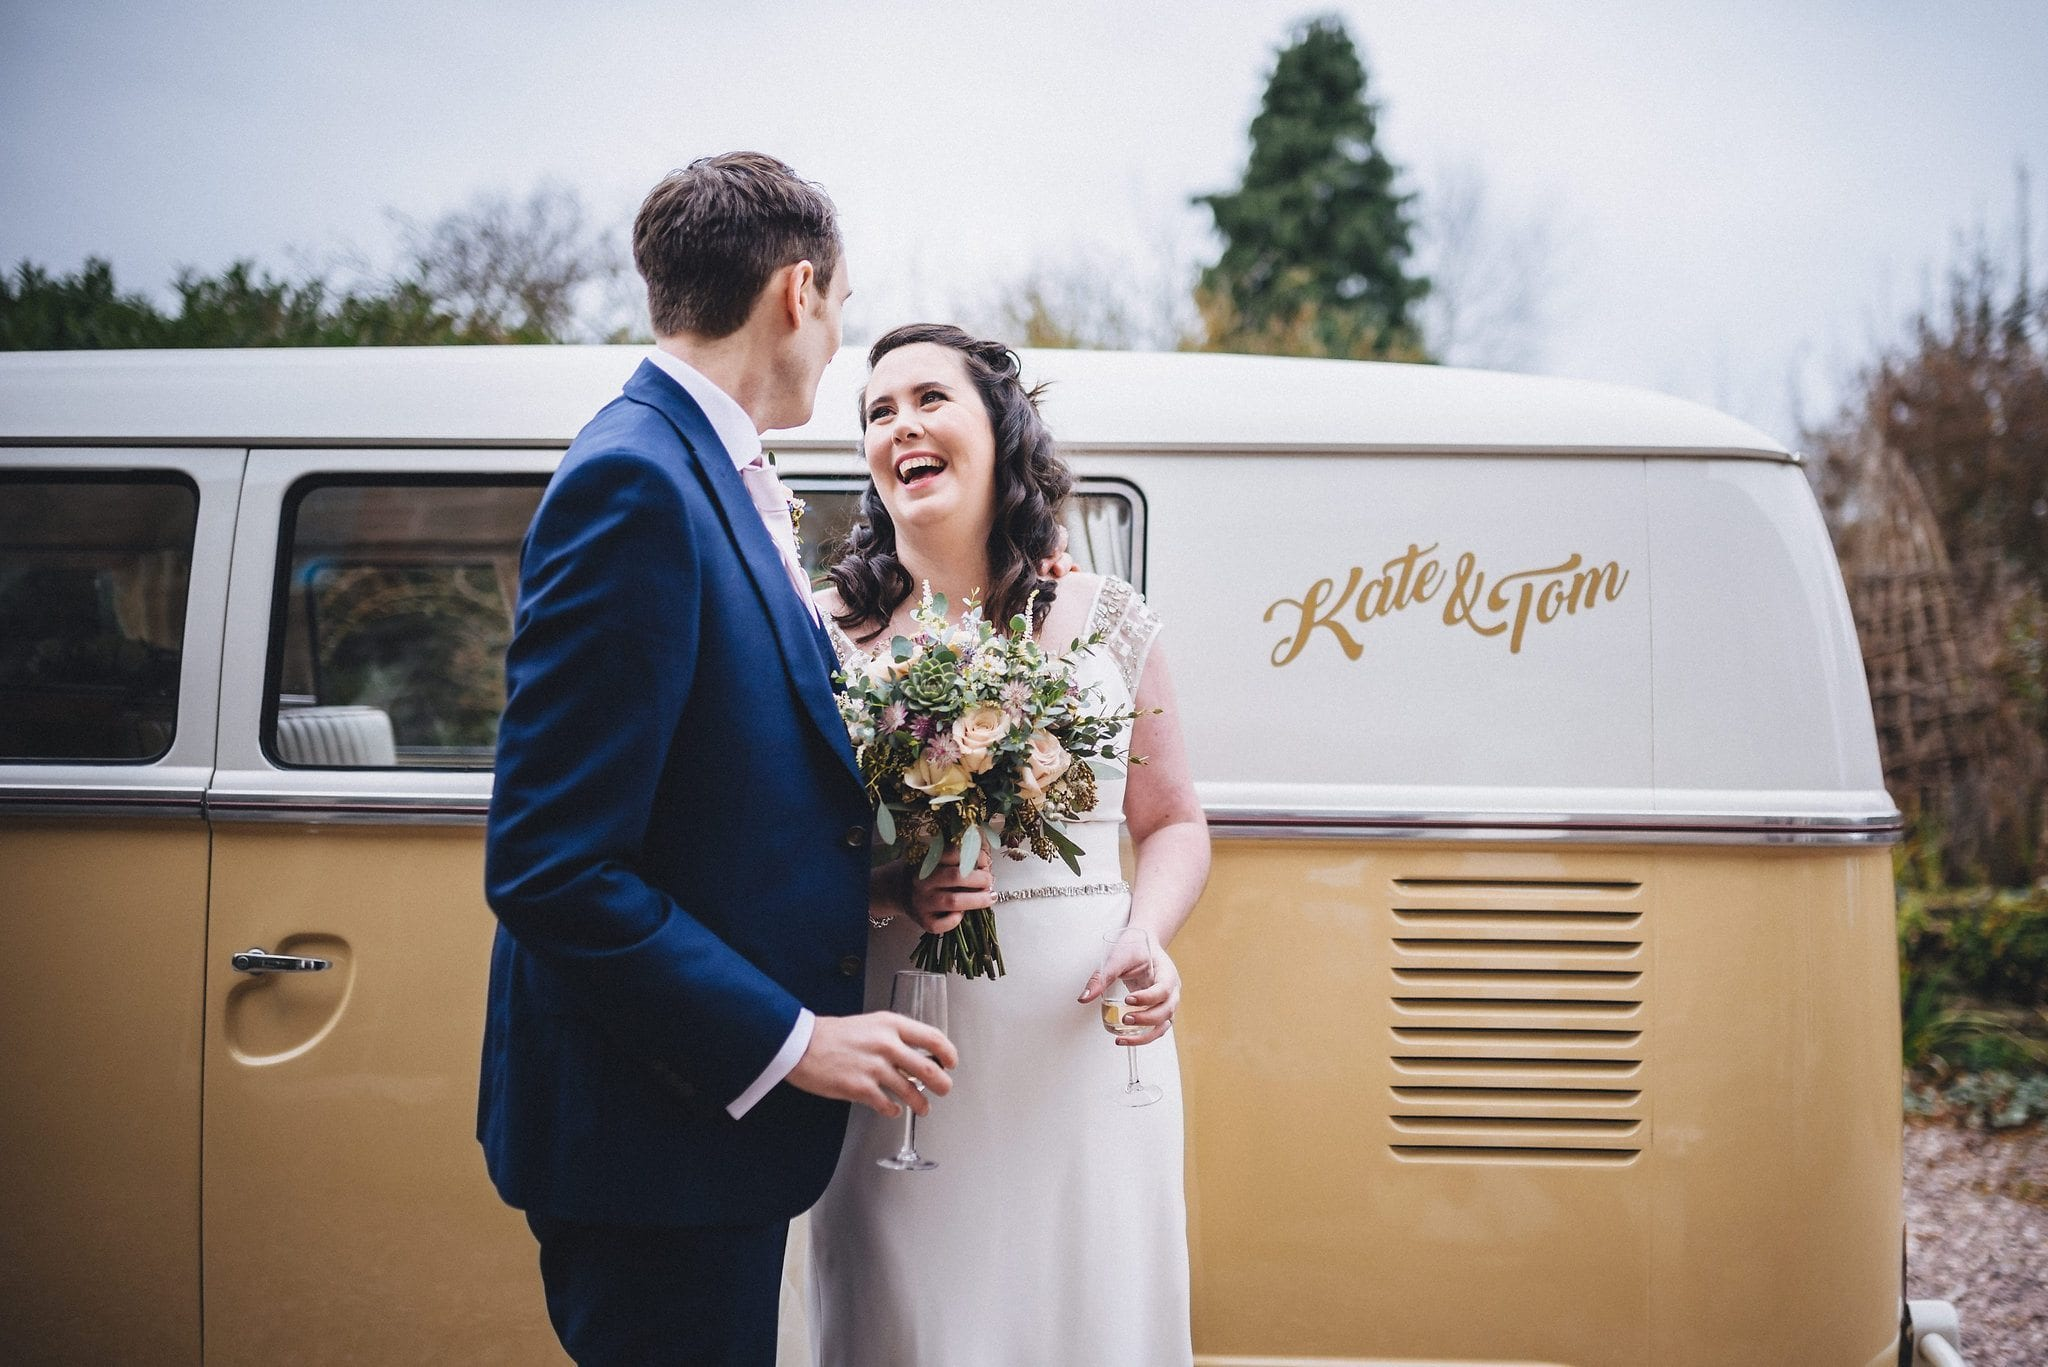 Bride and groom laugh together next to their personalised VW camper van